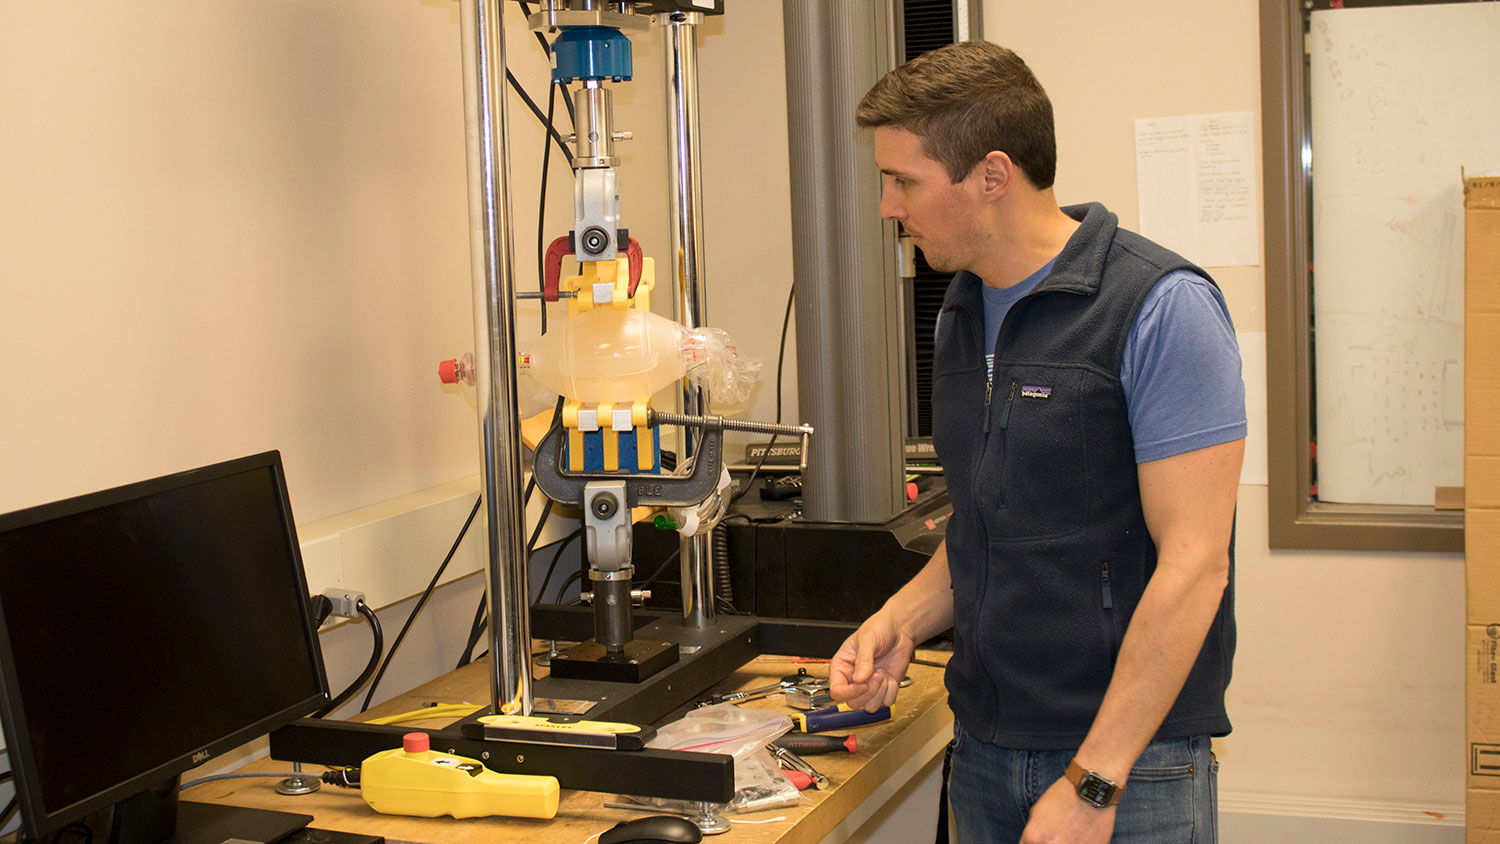 Landon Grace, an assistant professor of mechanical and aerospace engineering at NC State University, works with the emergency ventilator prototype (Photo by NC State University)